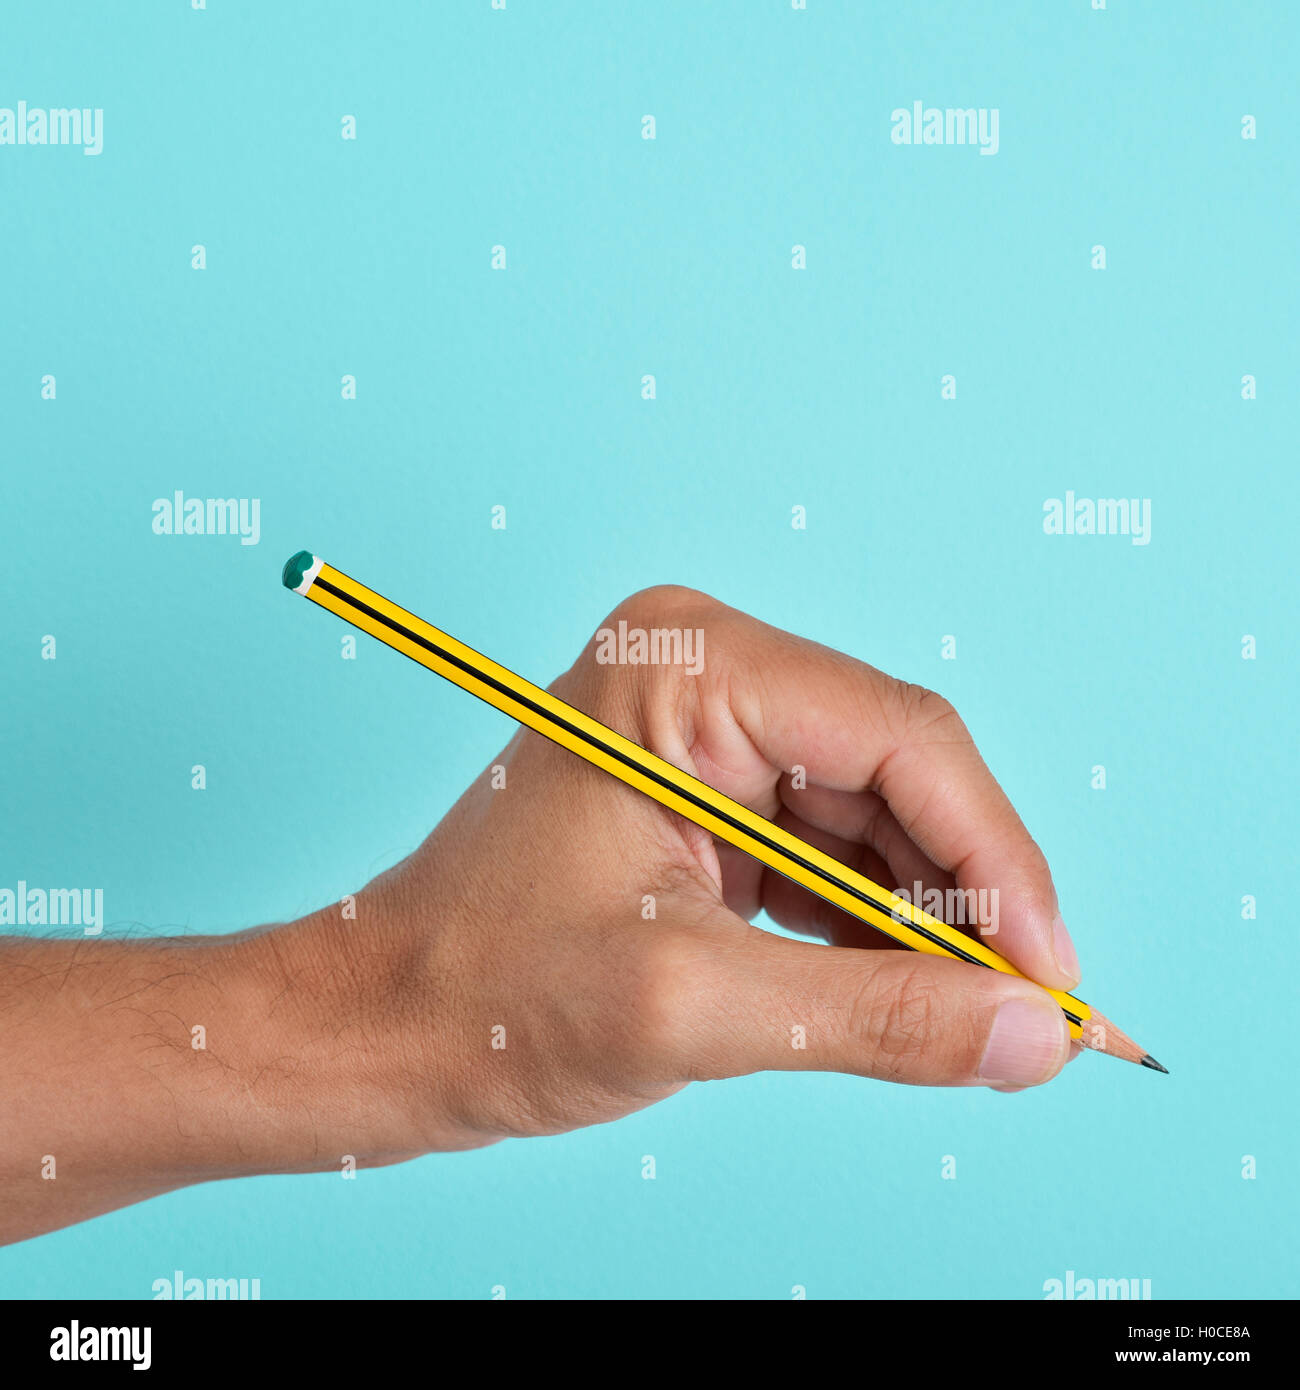 the hand of a left-handed man with a pencil, against a blue background - Stock Image